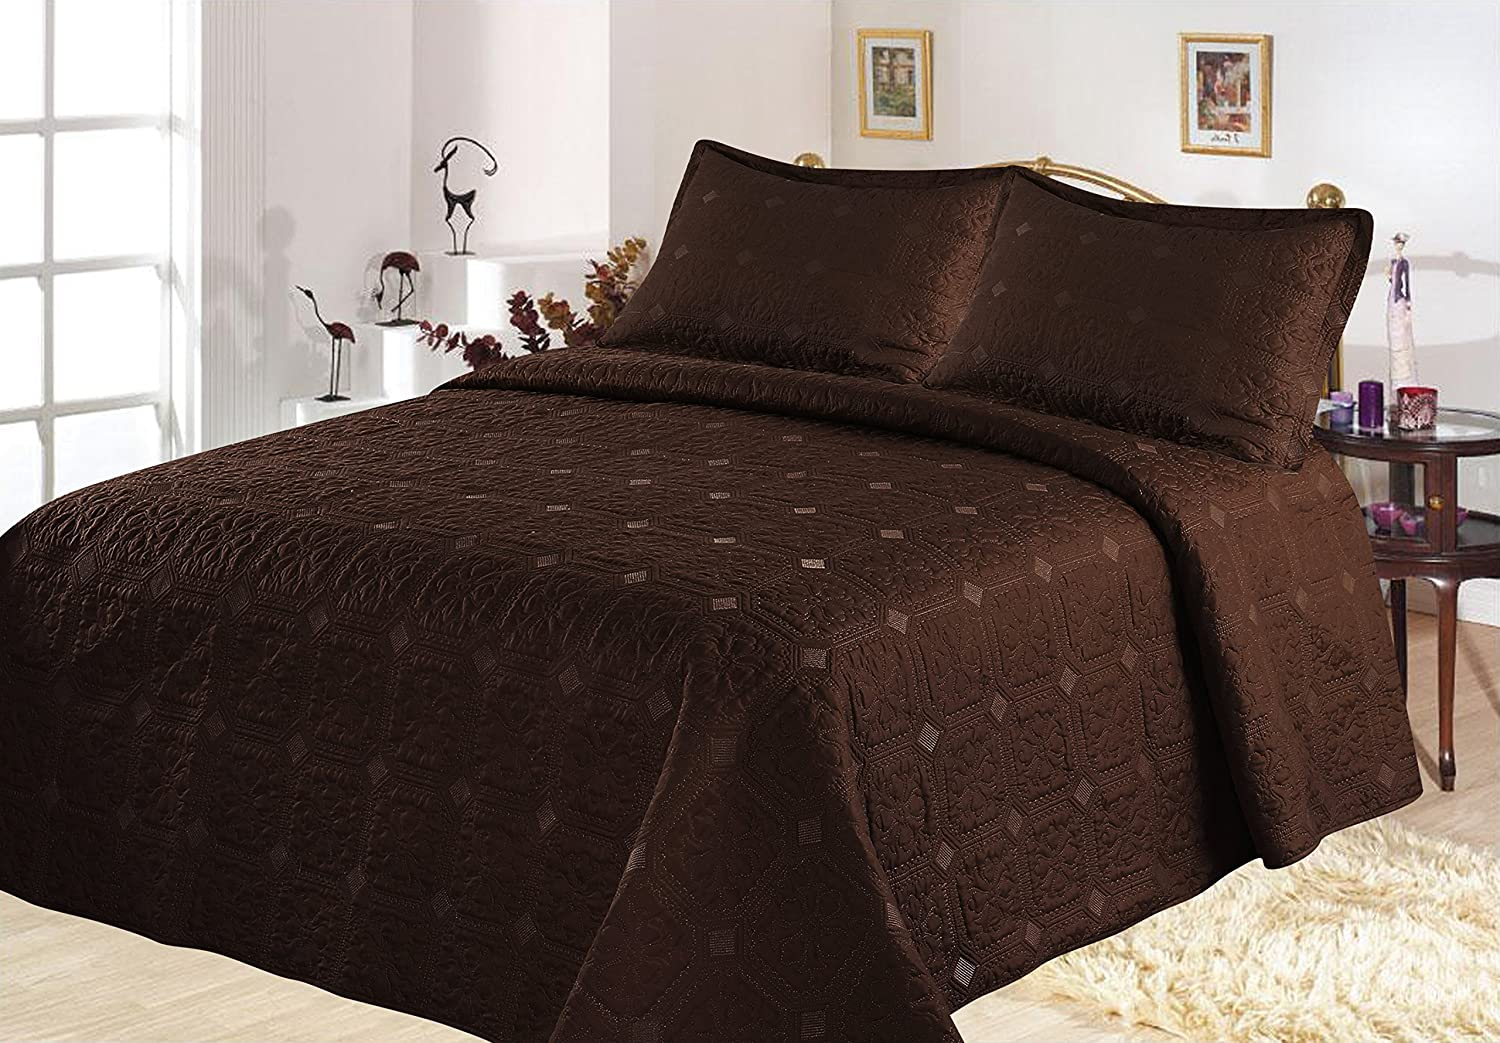 All American Collection New 3 Piece Solid Embroidered Bedspread/ Coverlet with Square Design